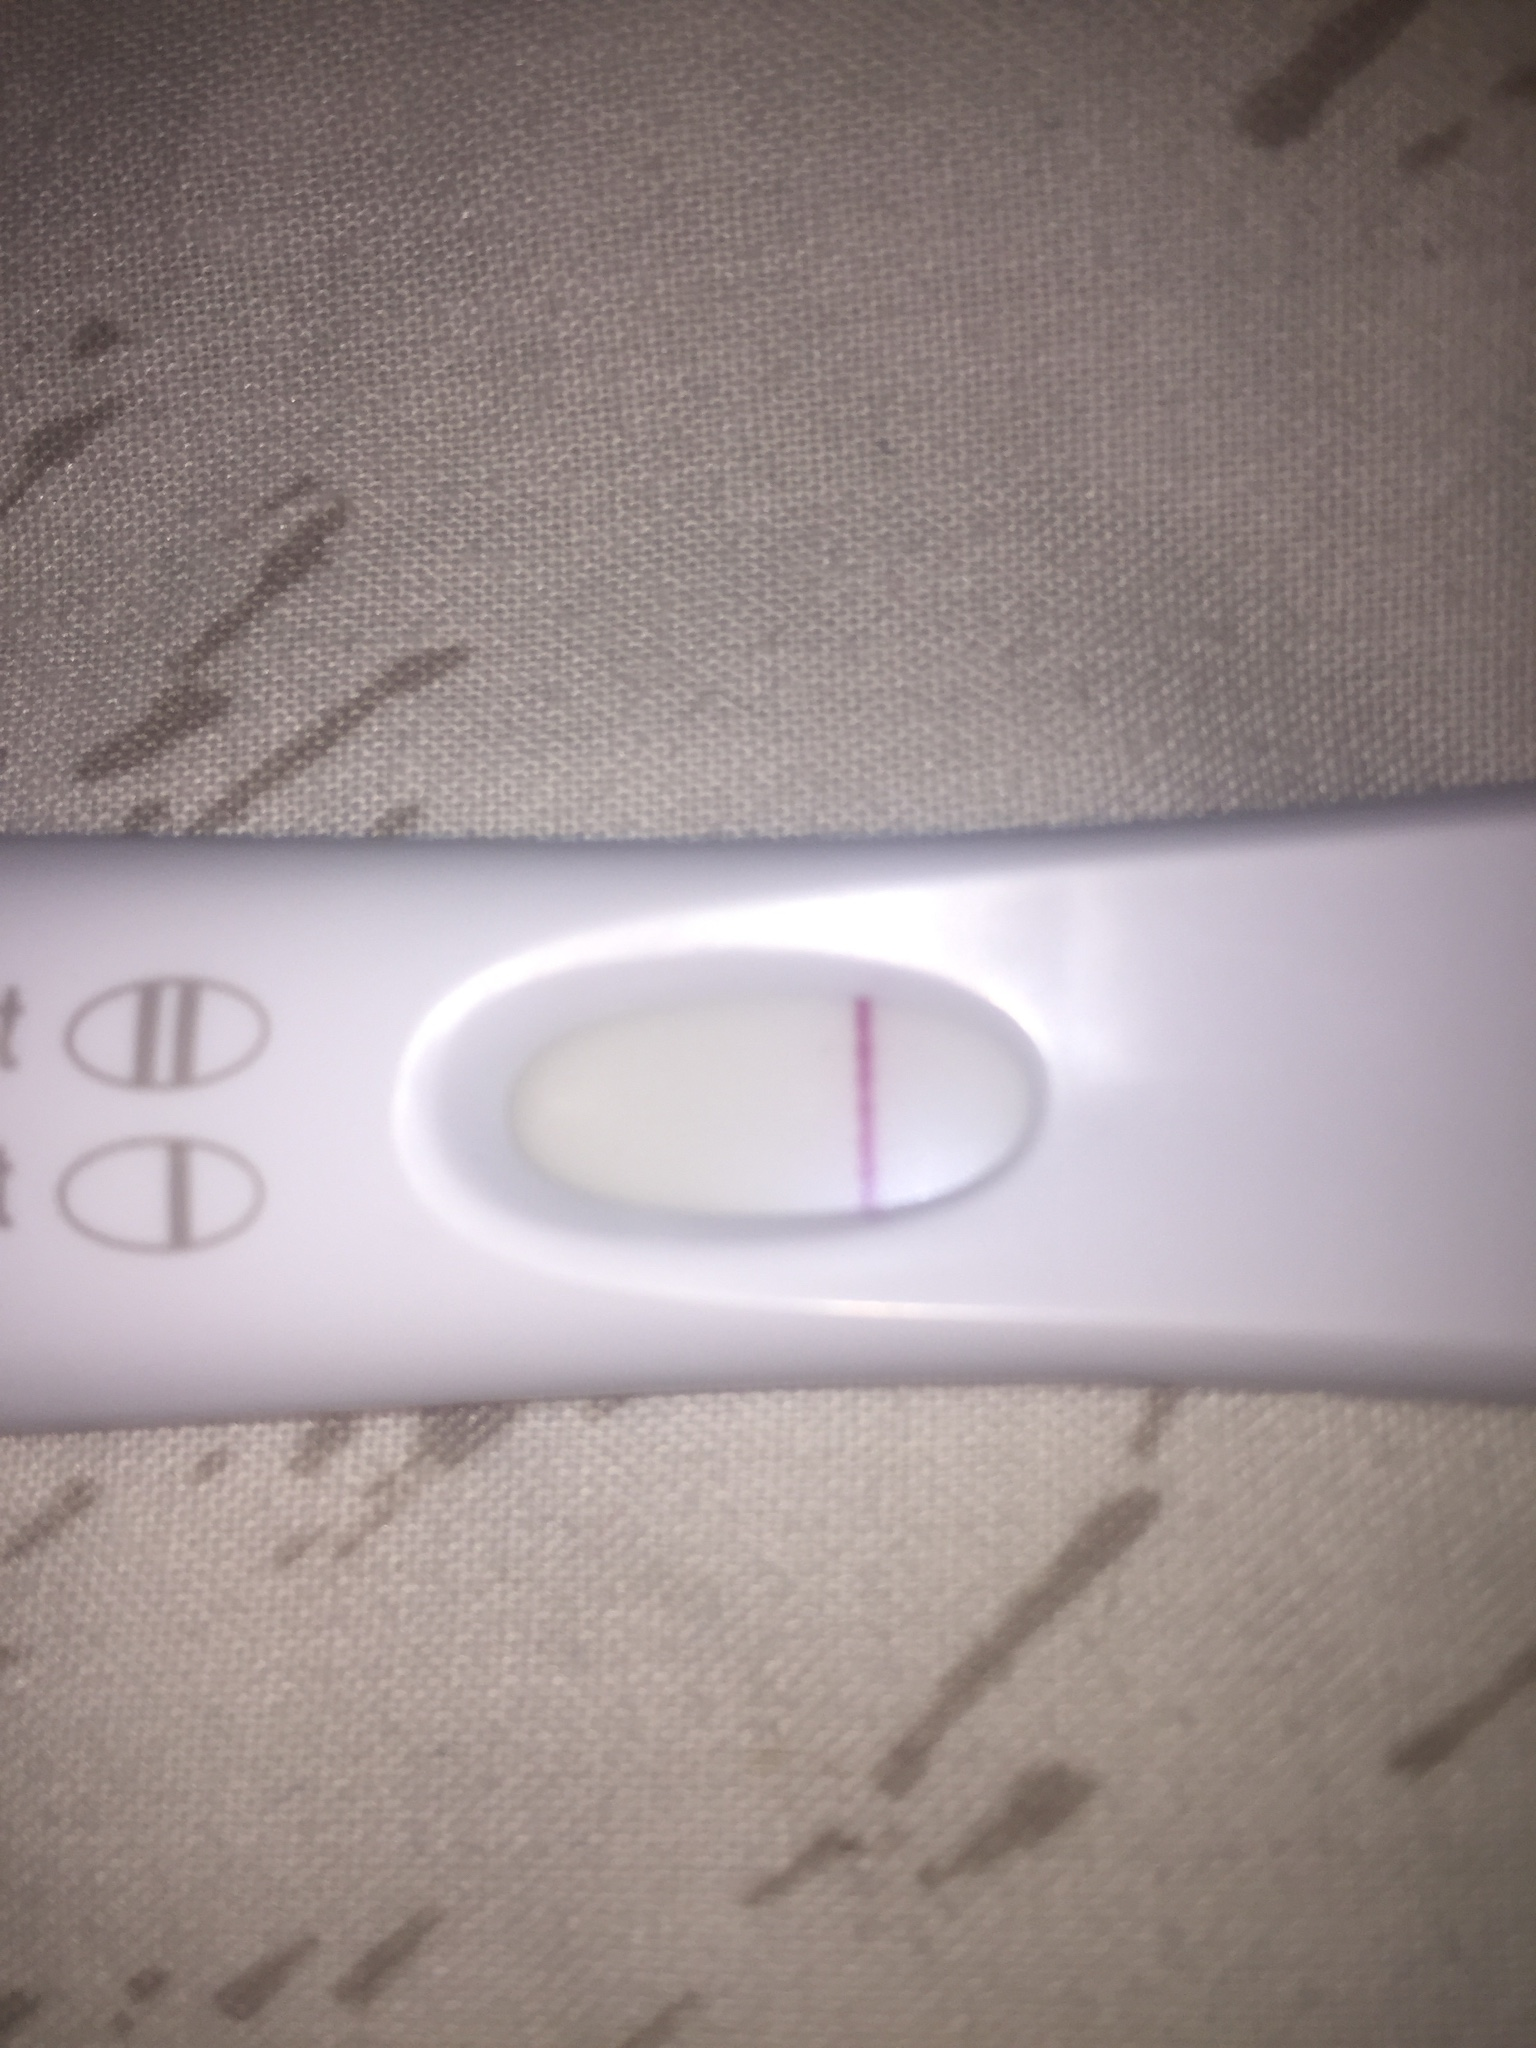 5dpo, anyone else out there? | Netmums - Page: 318